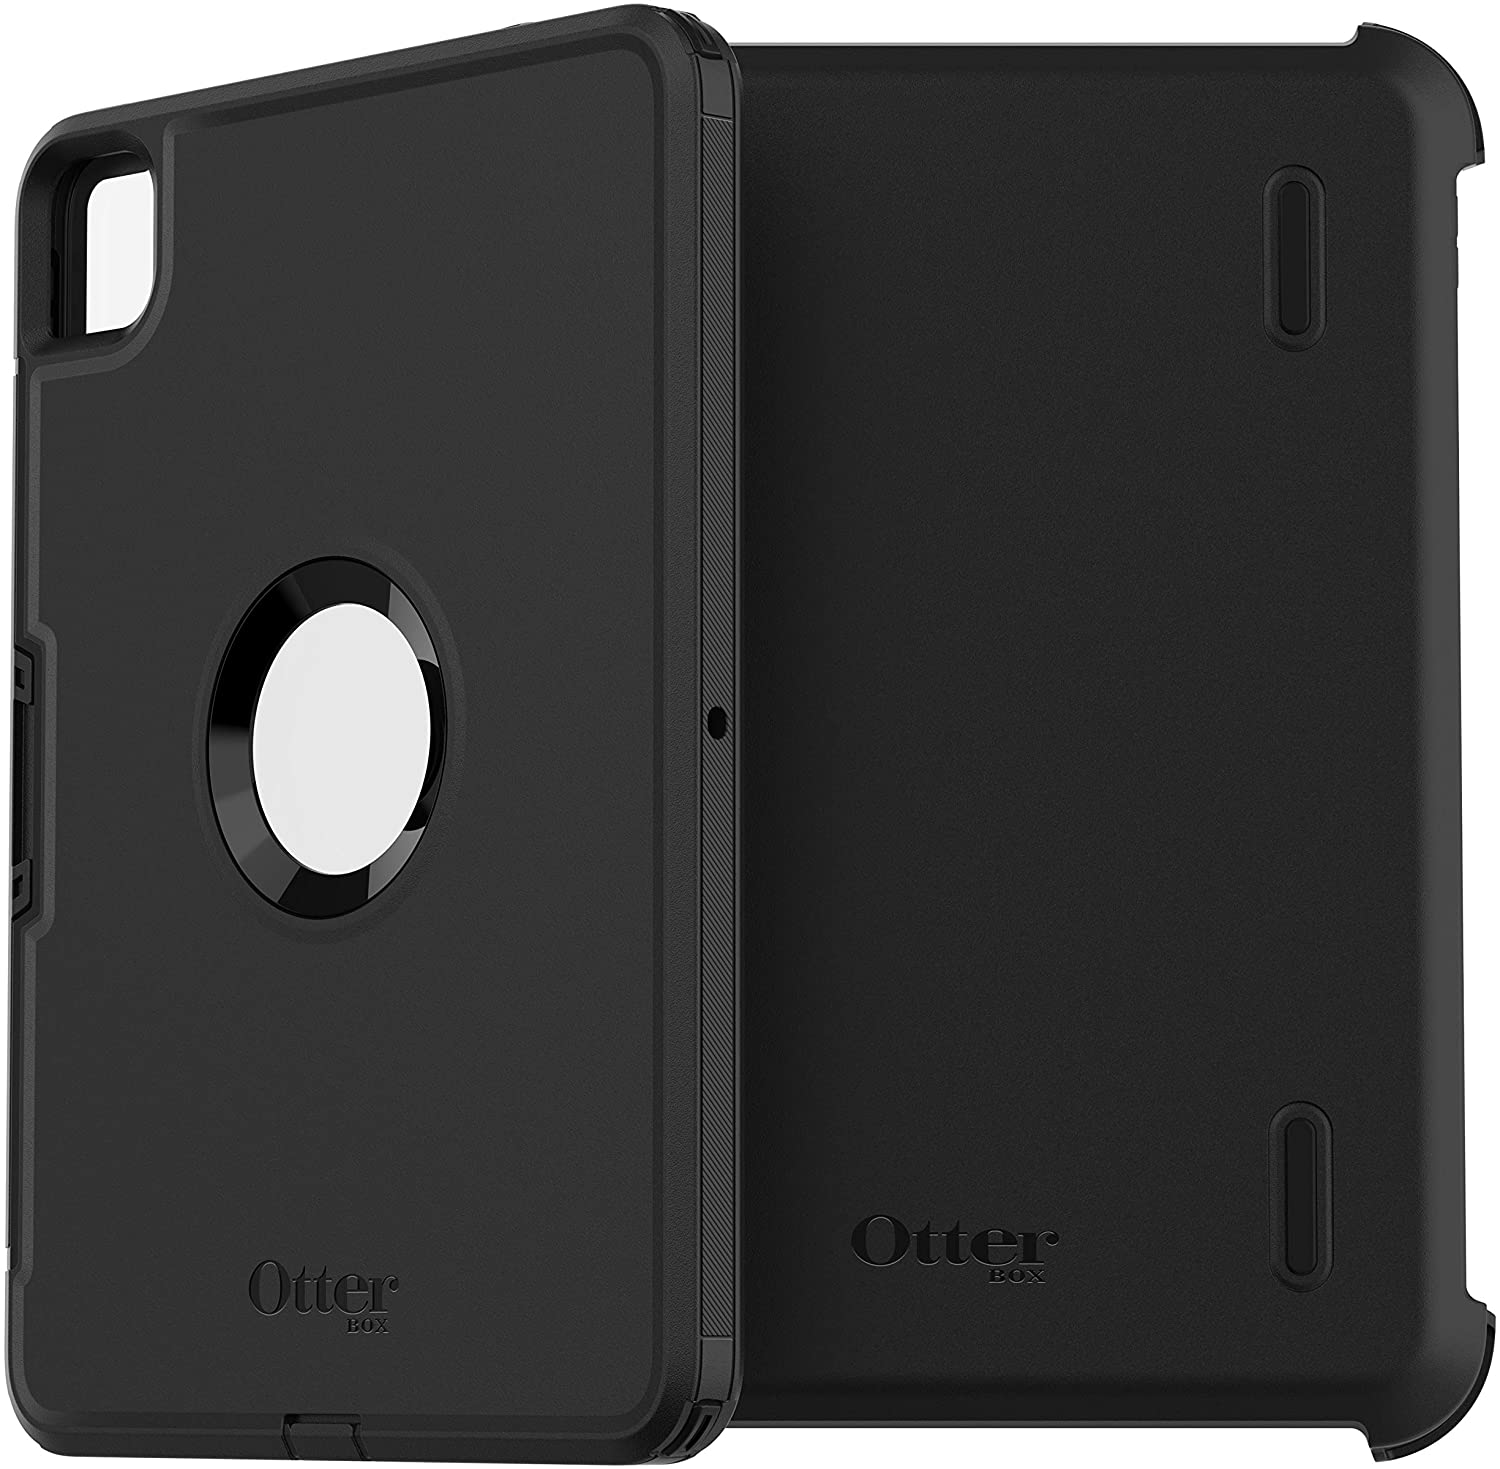 "OtterBox Defender Series Case for IPAD PRO 11"" (2ND GEN) - Black (77-65136)"